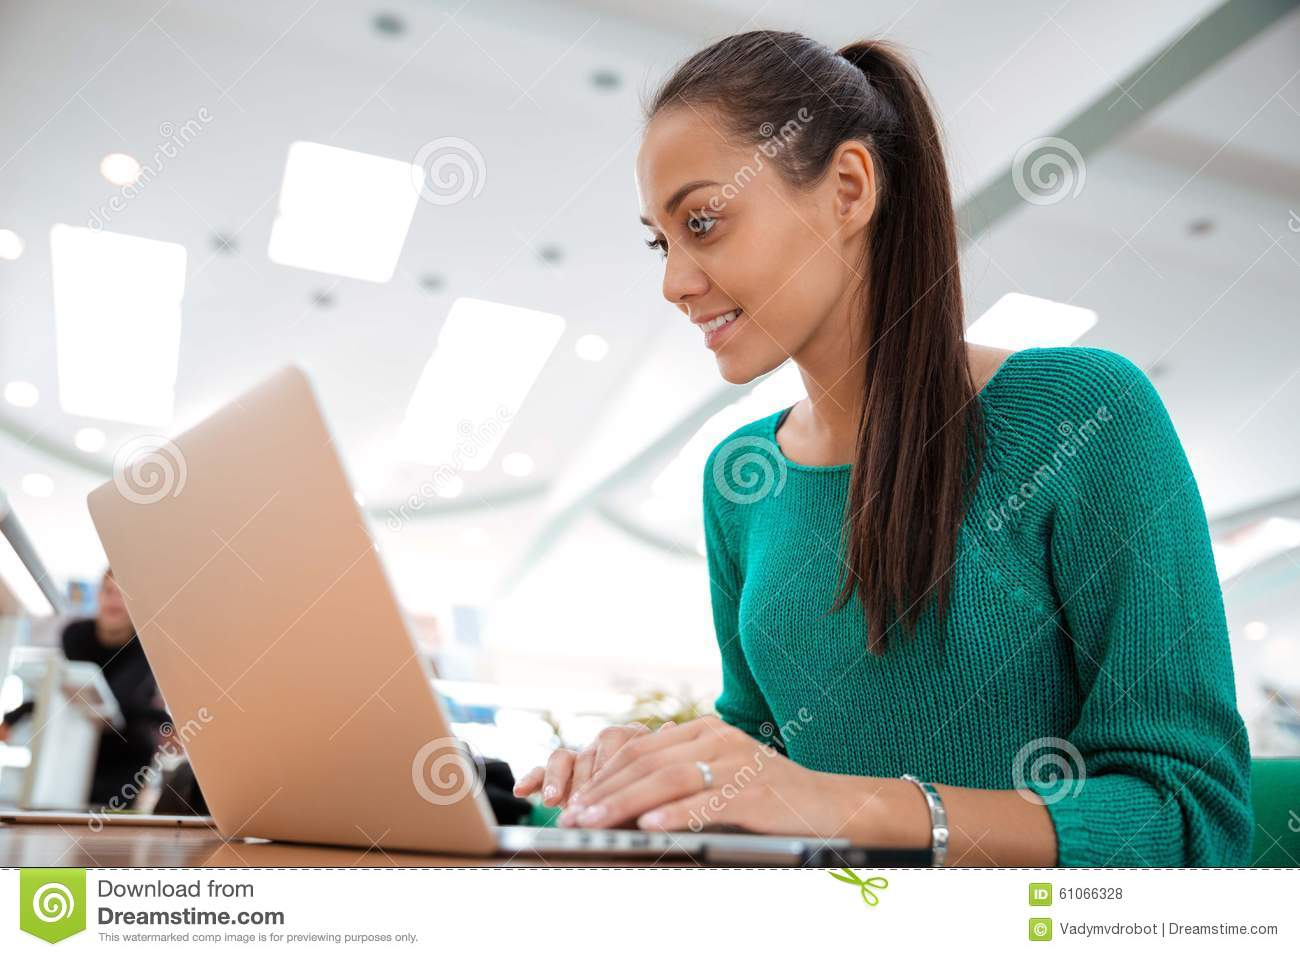 Download Happy Female Student Using Laptop In University Stock Photo - Image of hall, learner: 61066328